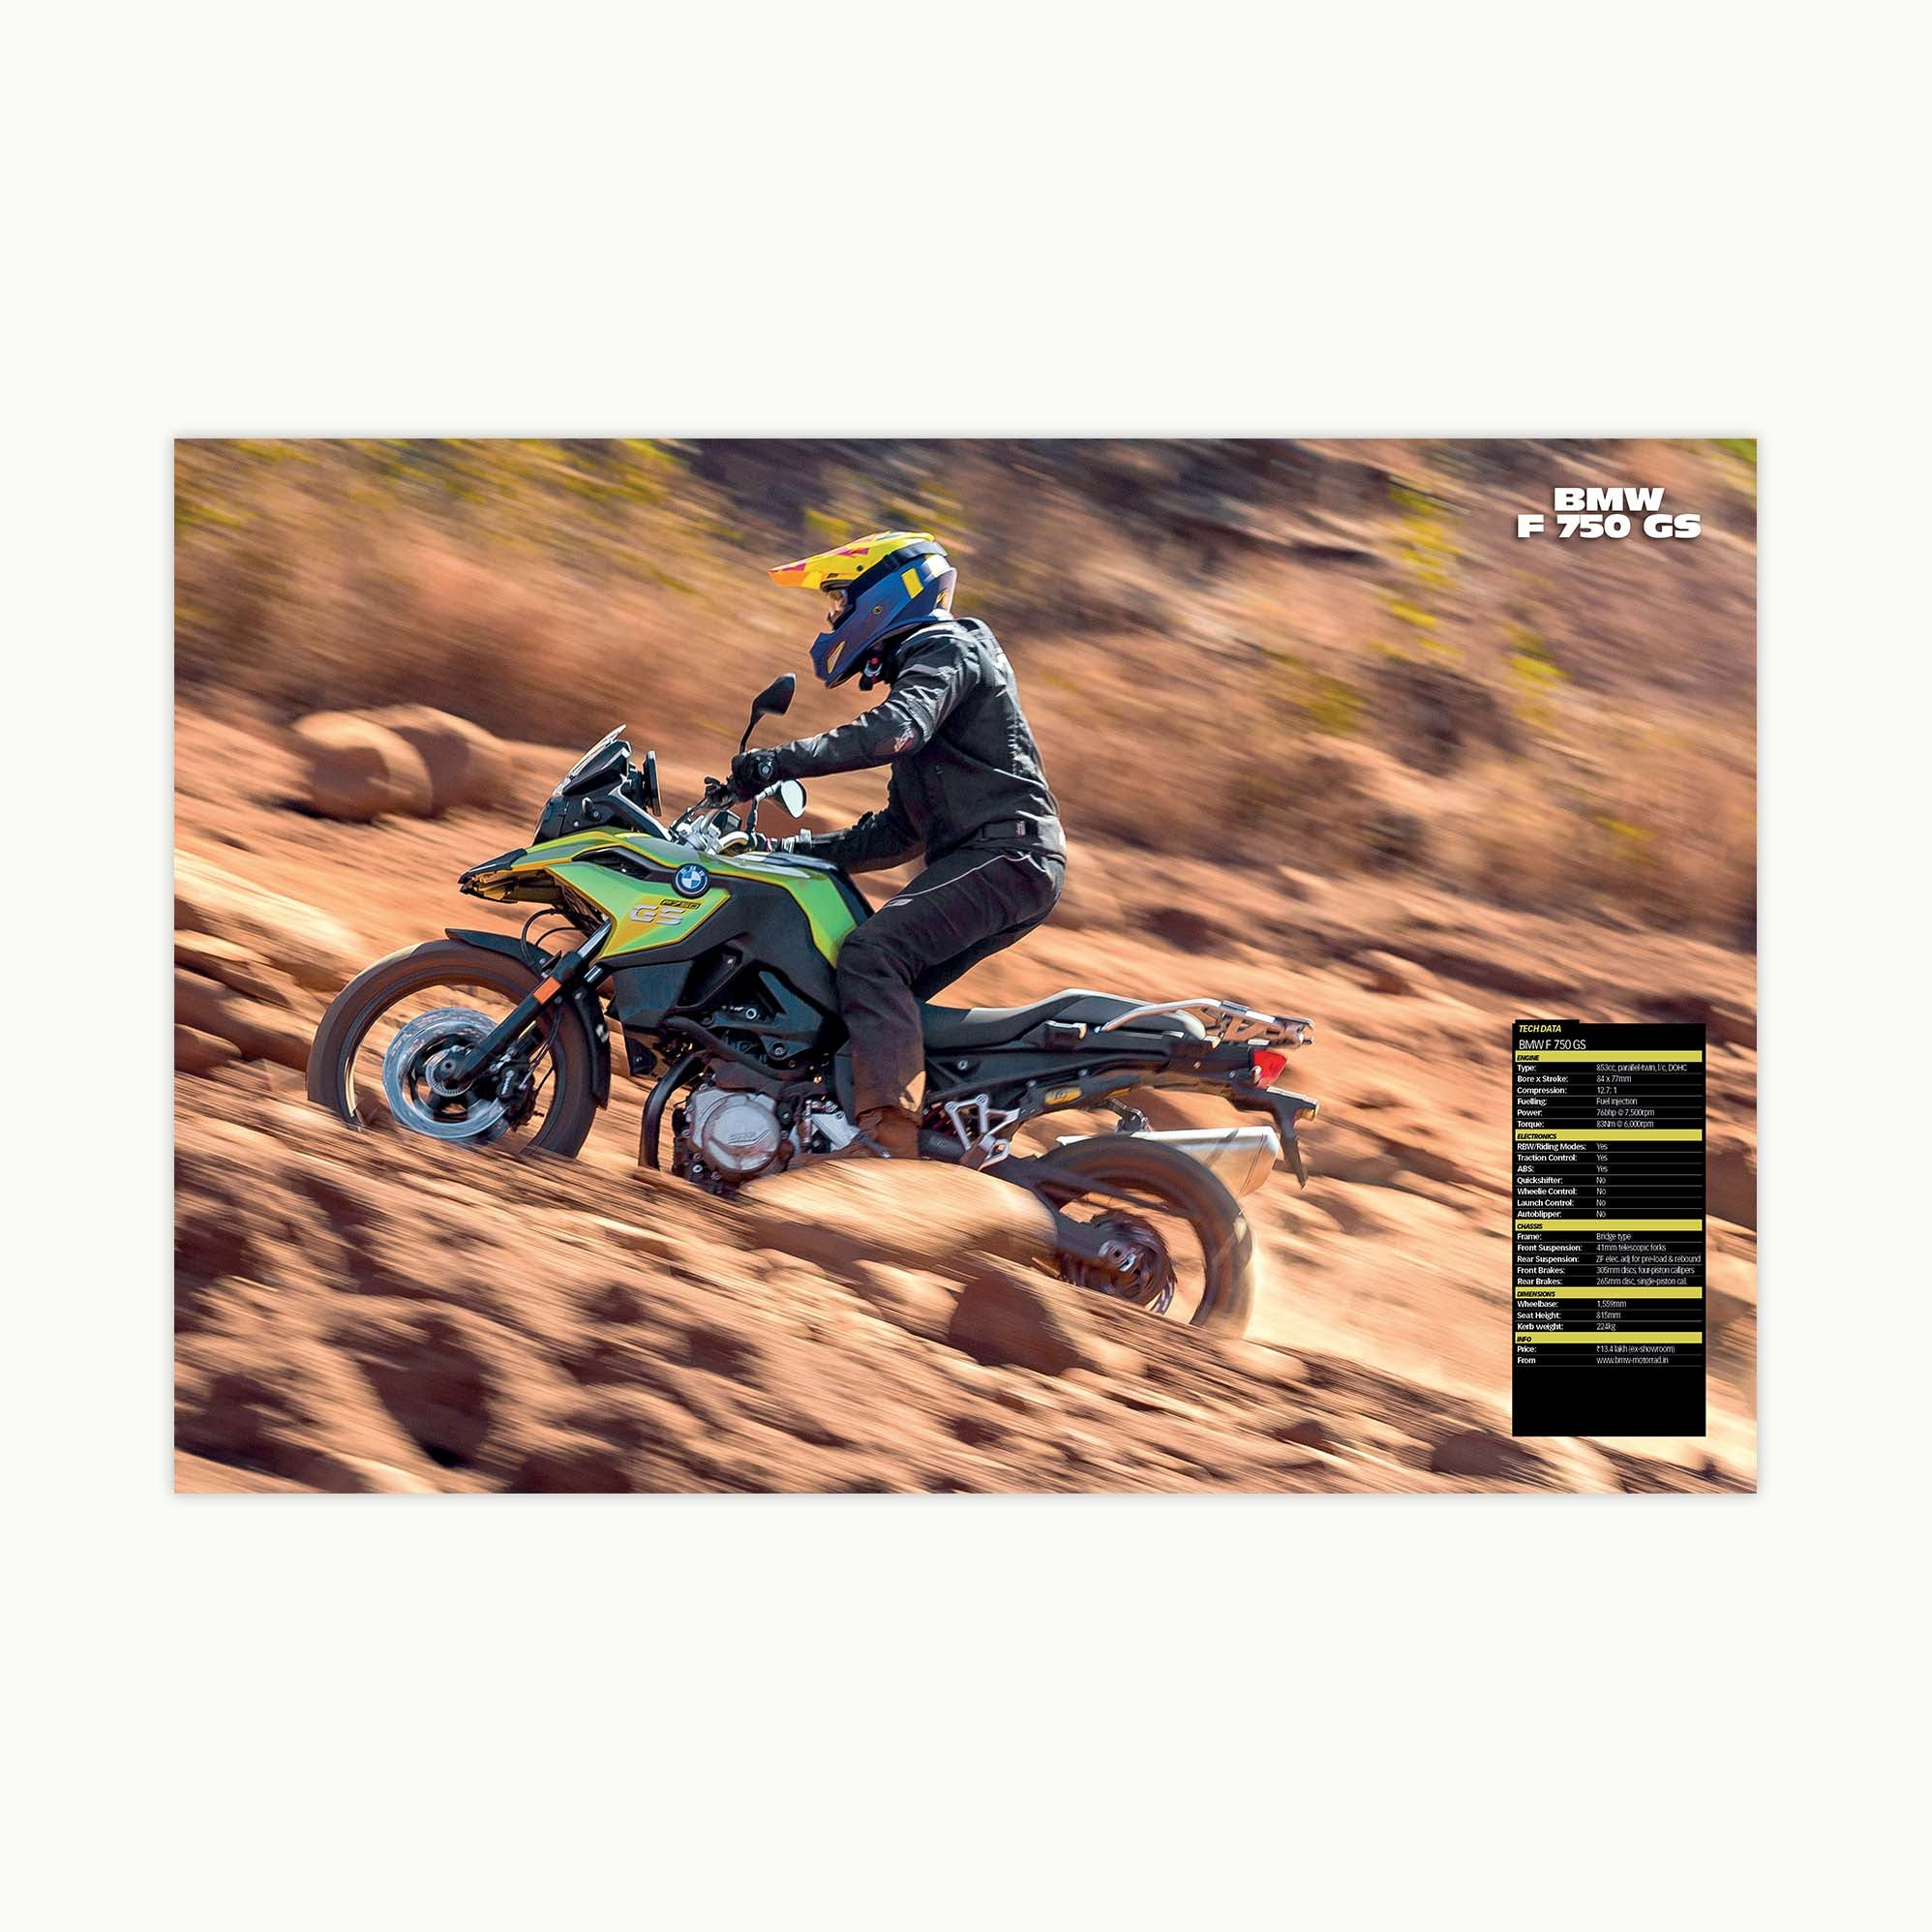 Fast Bikes India-F750GS (Limited Edition) | Poster